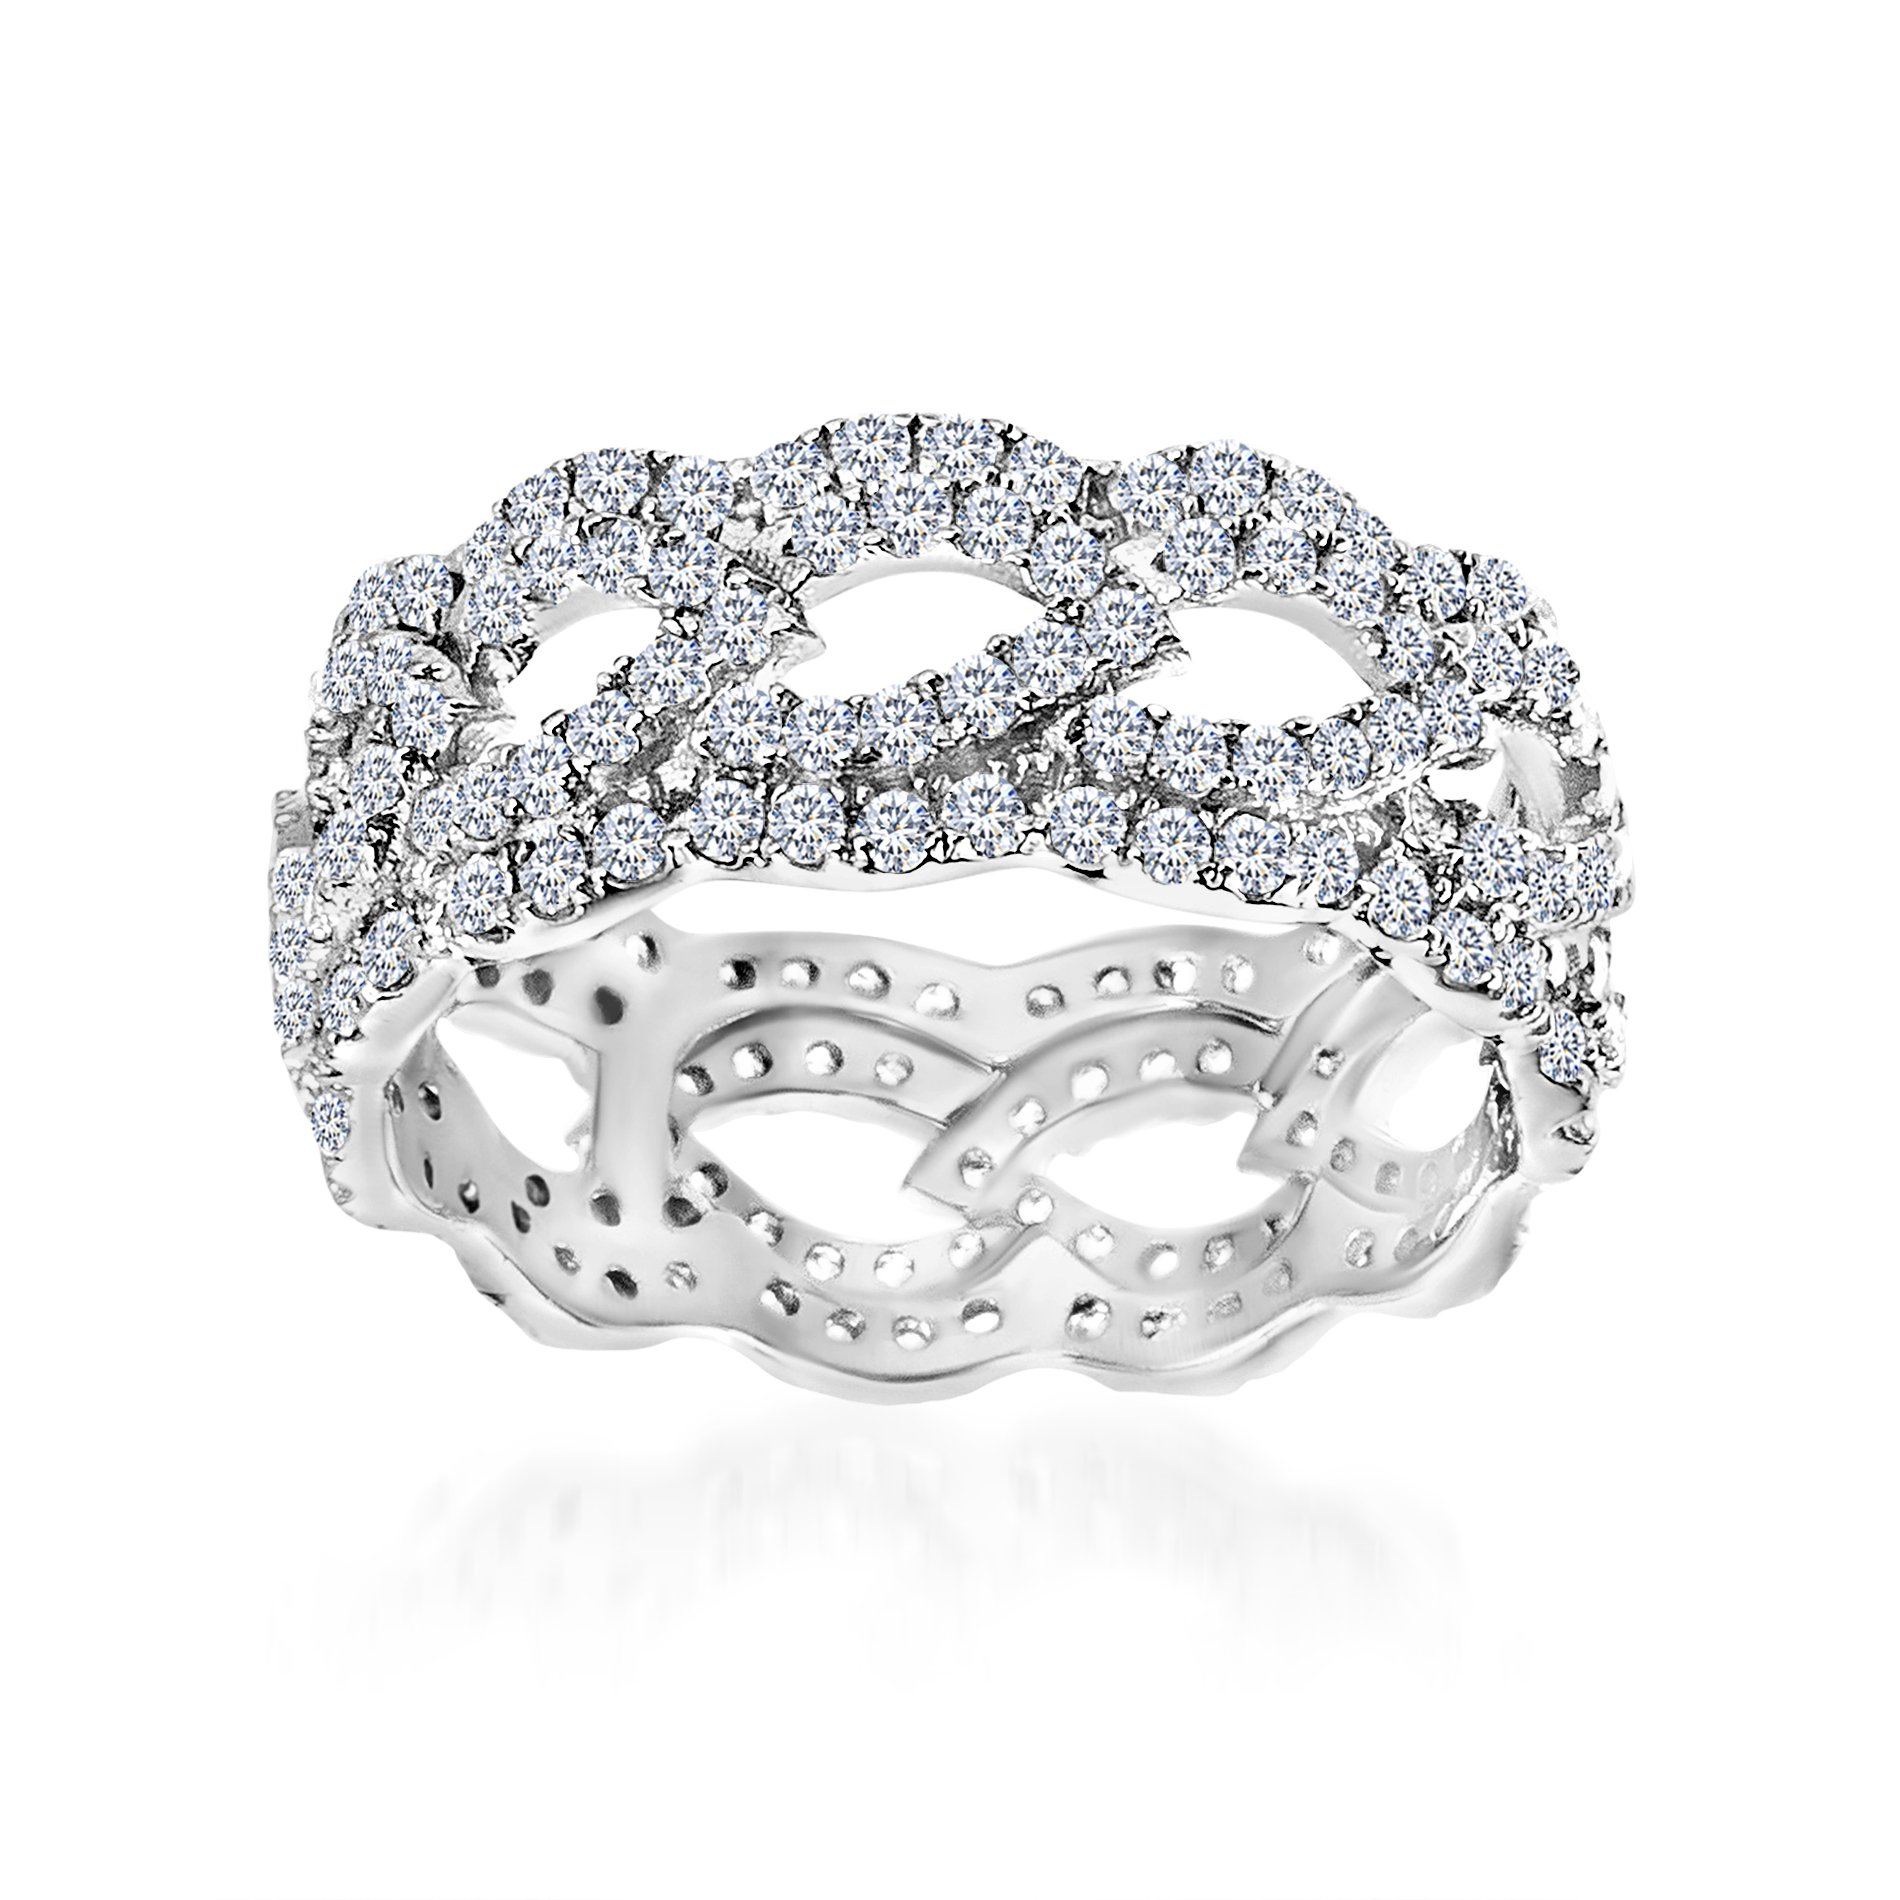 Mia Sarine Cubic Zirconia Open Leaf Design Eternity Band Ring in Rhodium over Sterling Silver Size 7